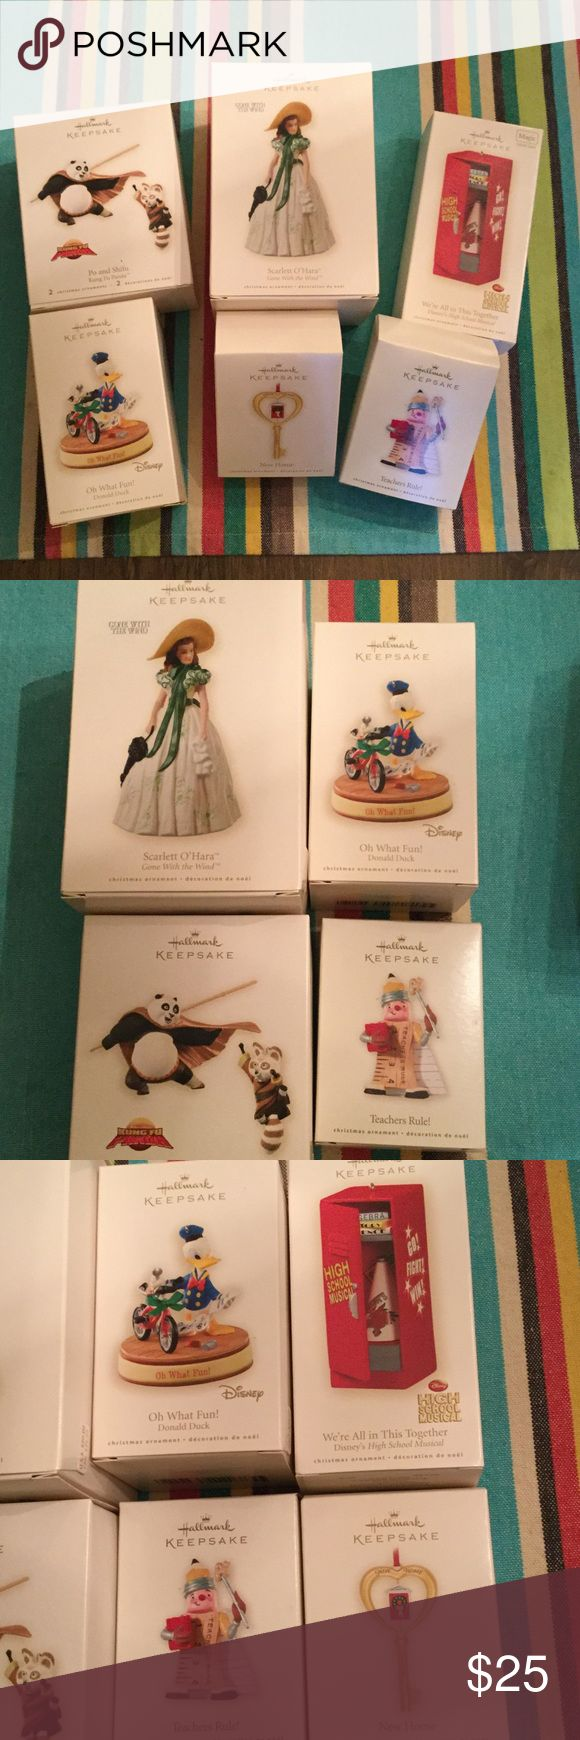 Bundle Hallmark New Christmas Ornaments 6 ornaments bundle. Gone with the wind Scarlett O'Hara, Disney Donald Duck, Kung fu panda 🐼 Po and Shifu. Teachers rule, high school musical and new home. All brand new never opened Hallmark Other